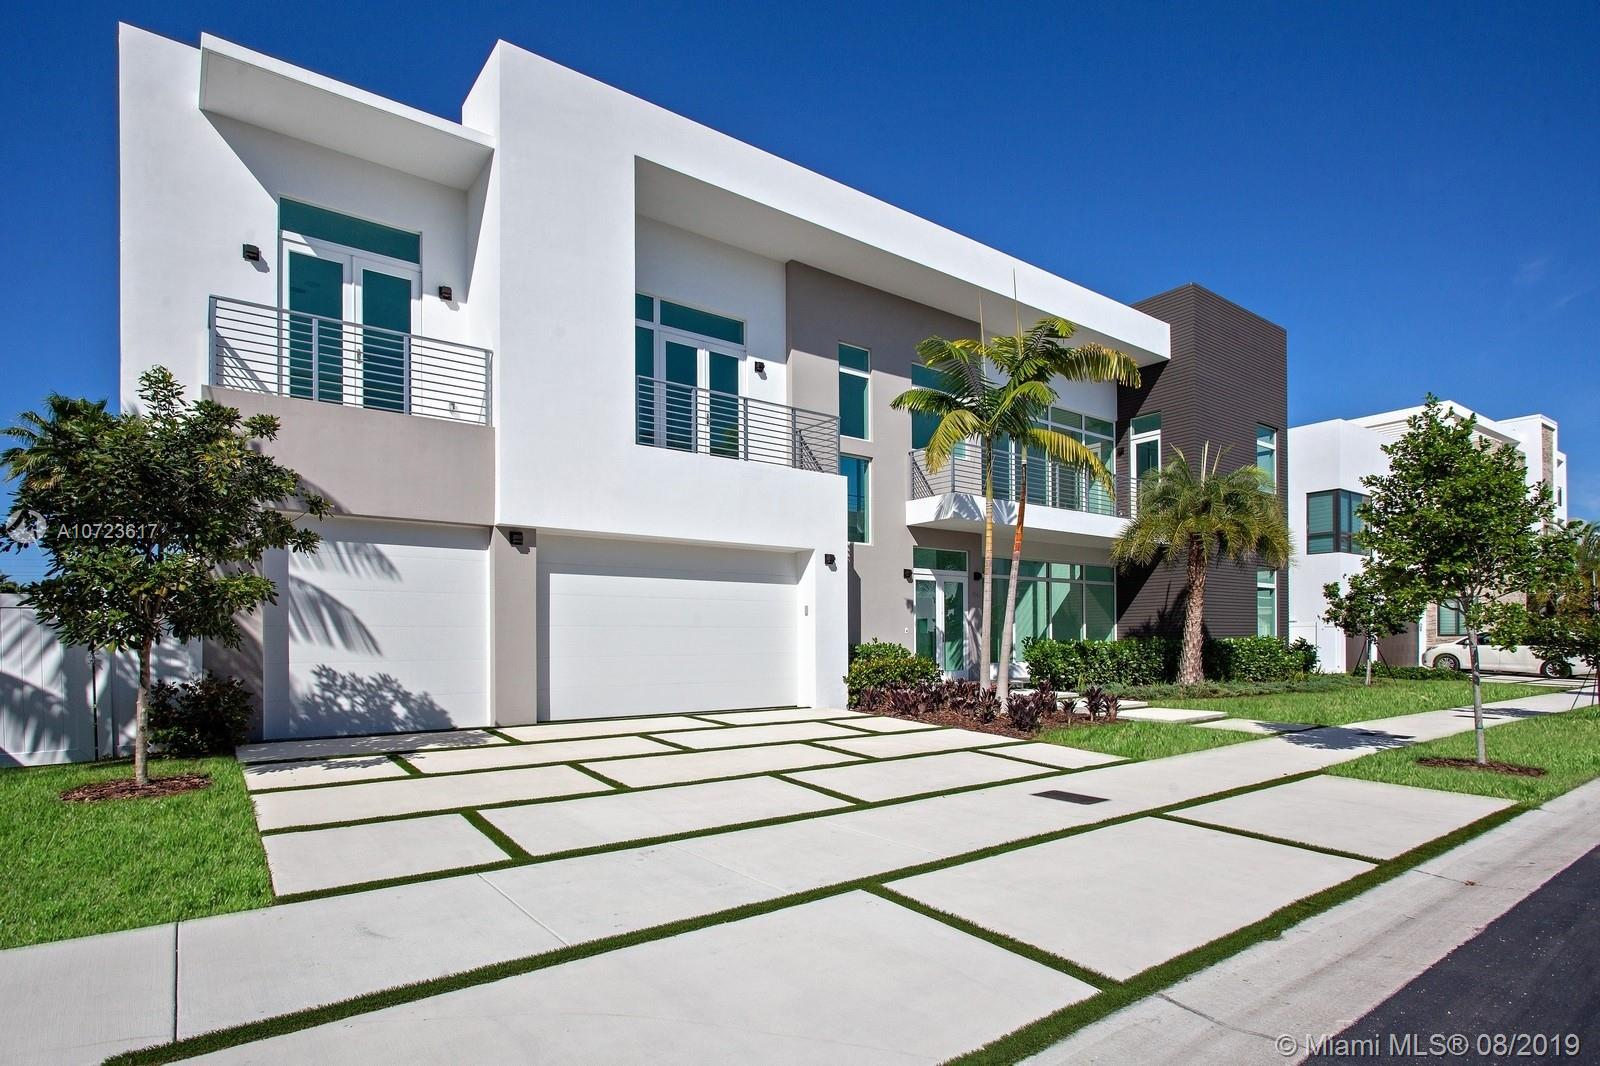 6810 NW 105th Ave, Doral, FL 33178